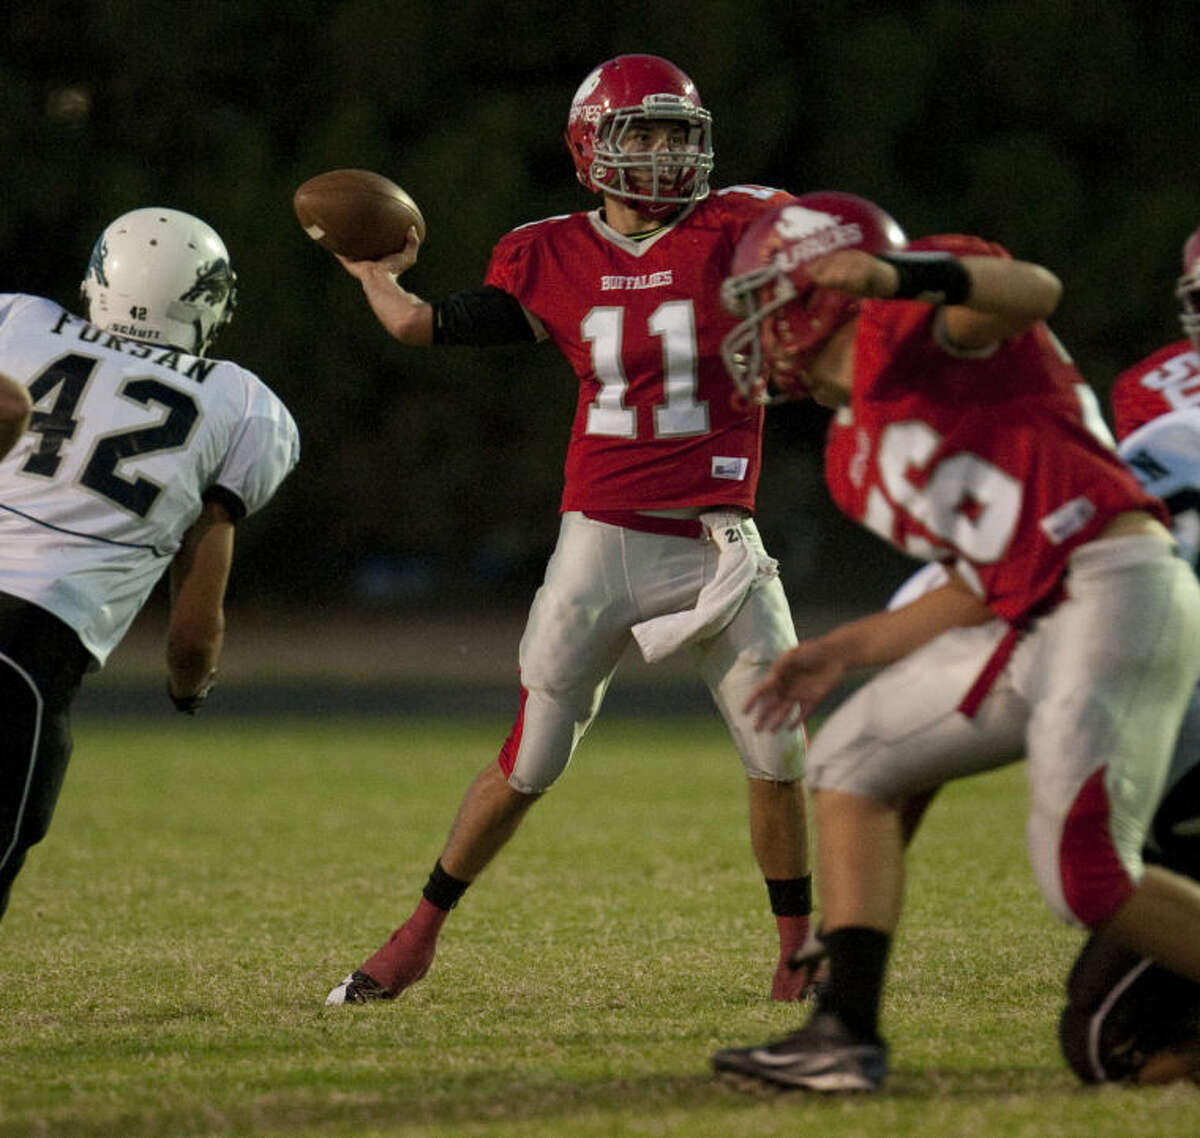 Stanton QB K.J. Glaspie completed 12 of 20 passes for 139 yards, one TD, one interception, plus three rushing touchdowns in the Buffaloes' 42-20 victory.